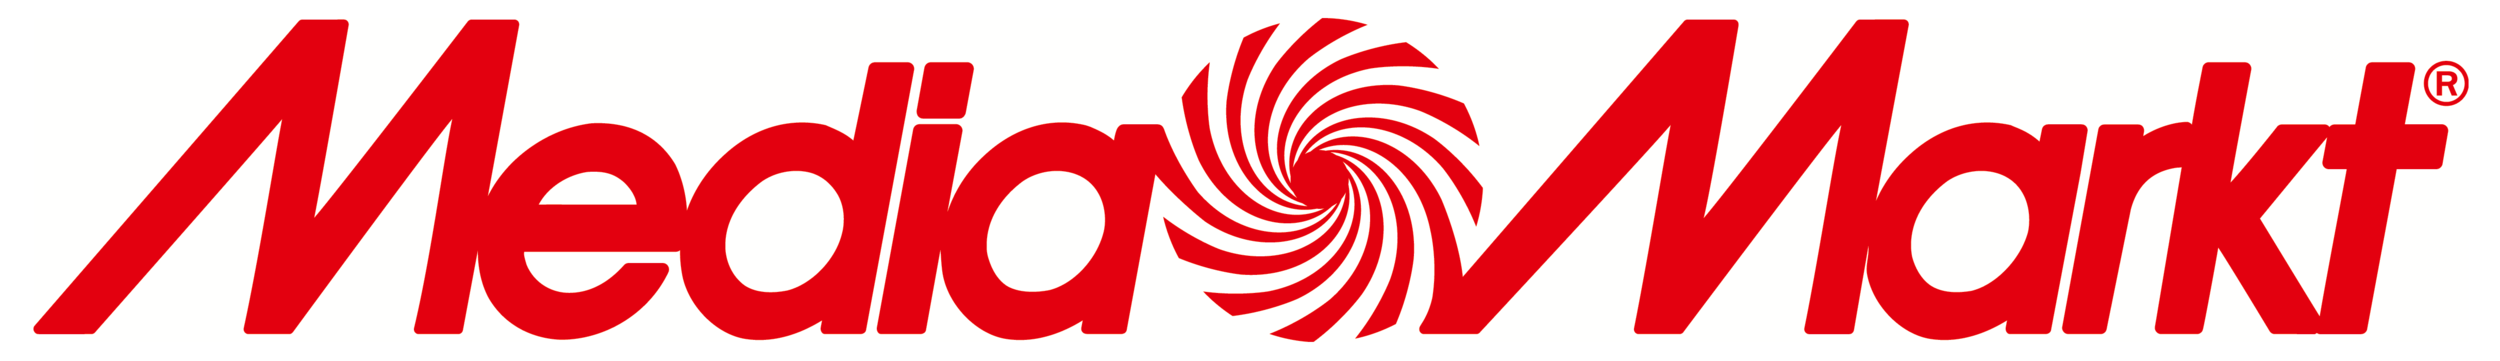 Media_Markt_red_logo.png